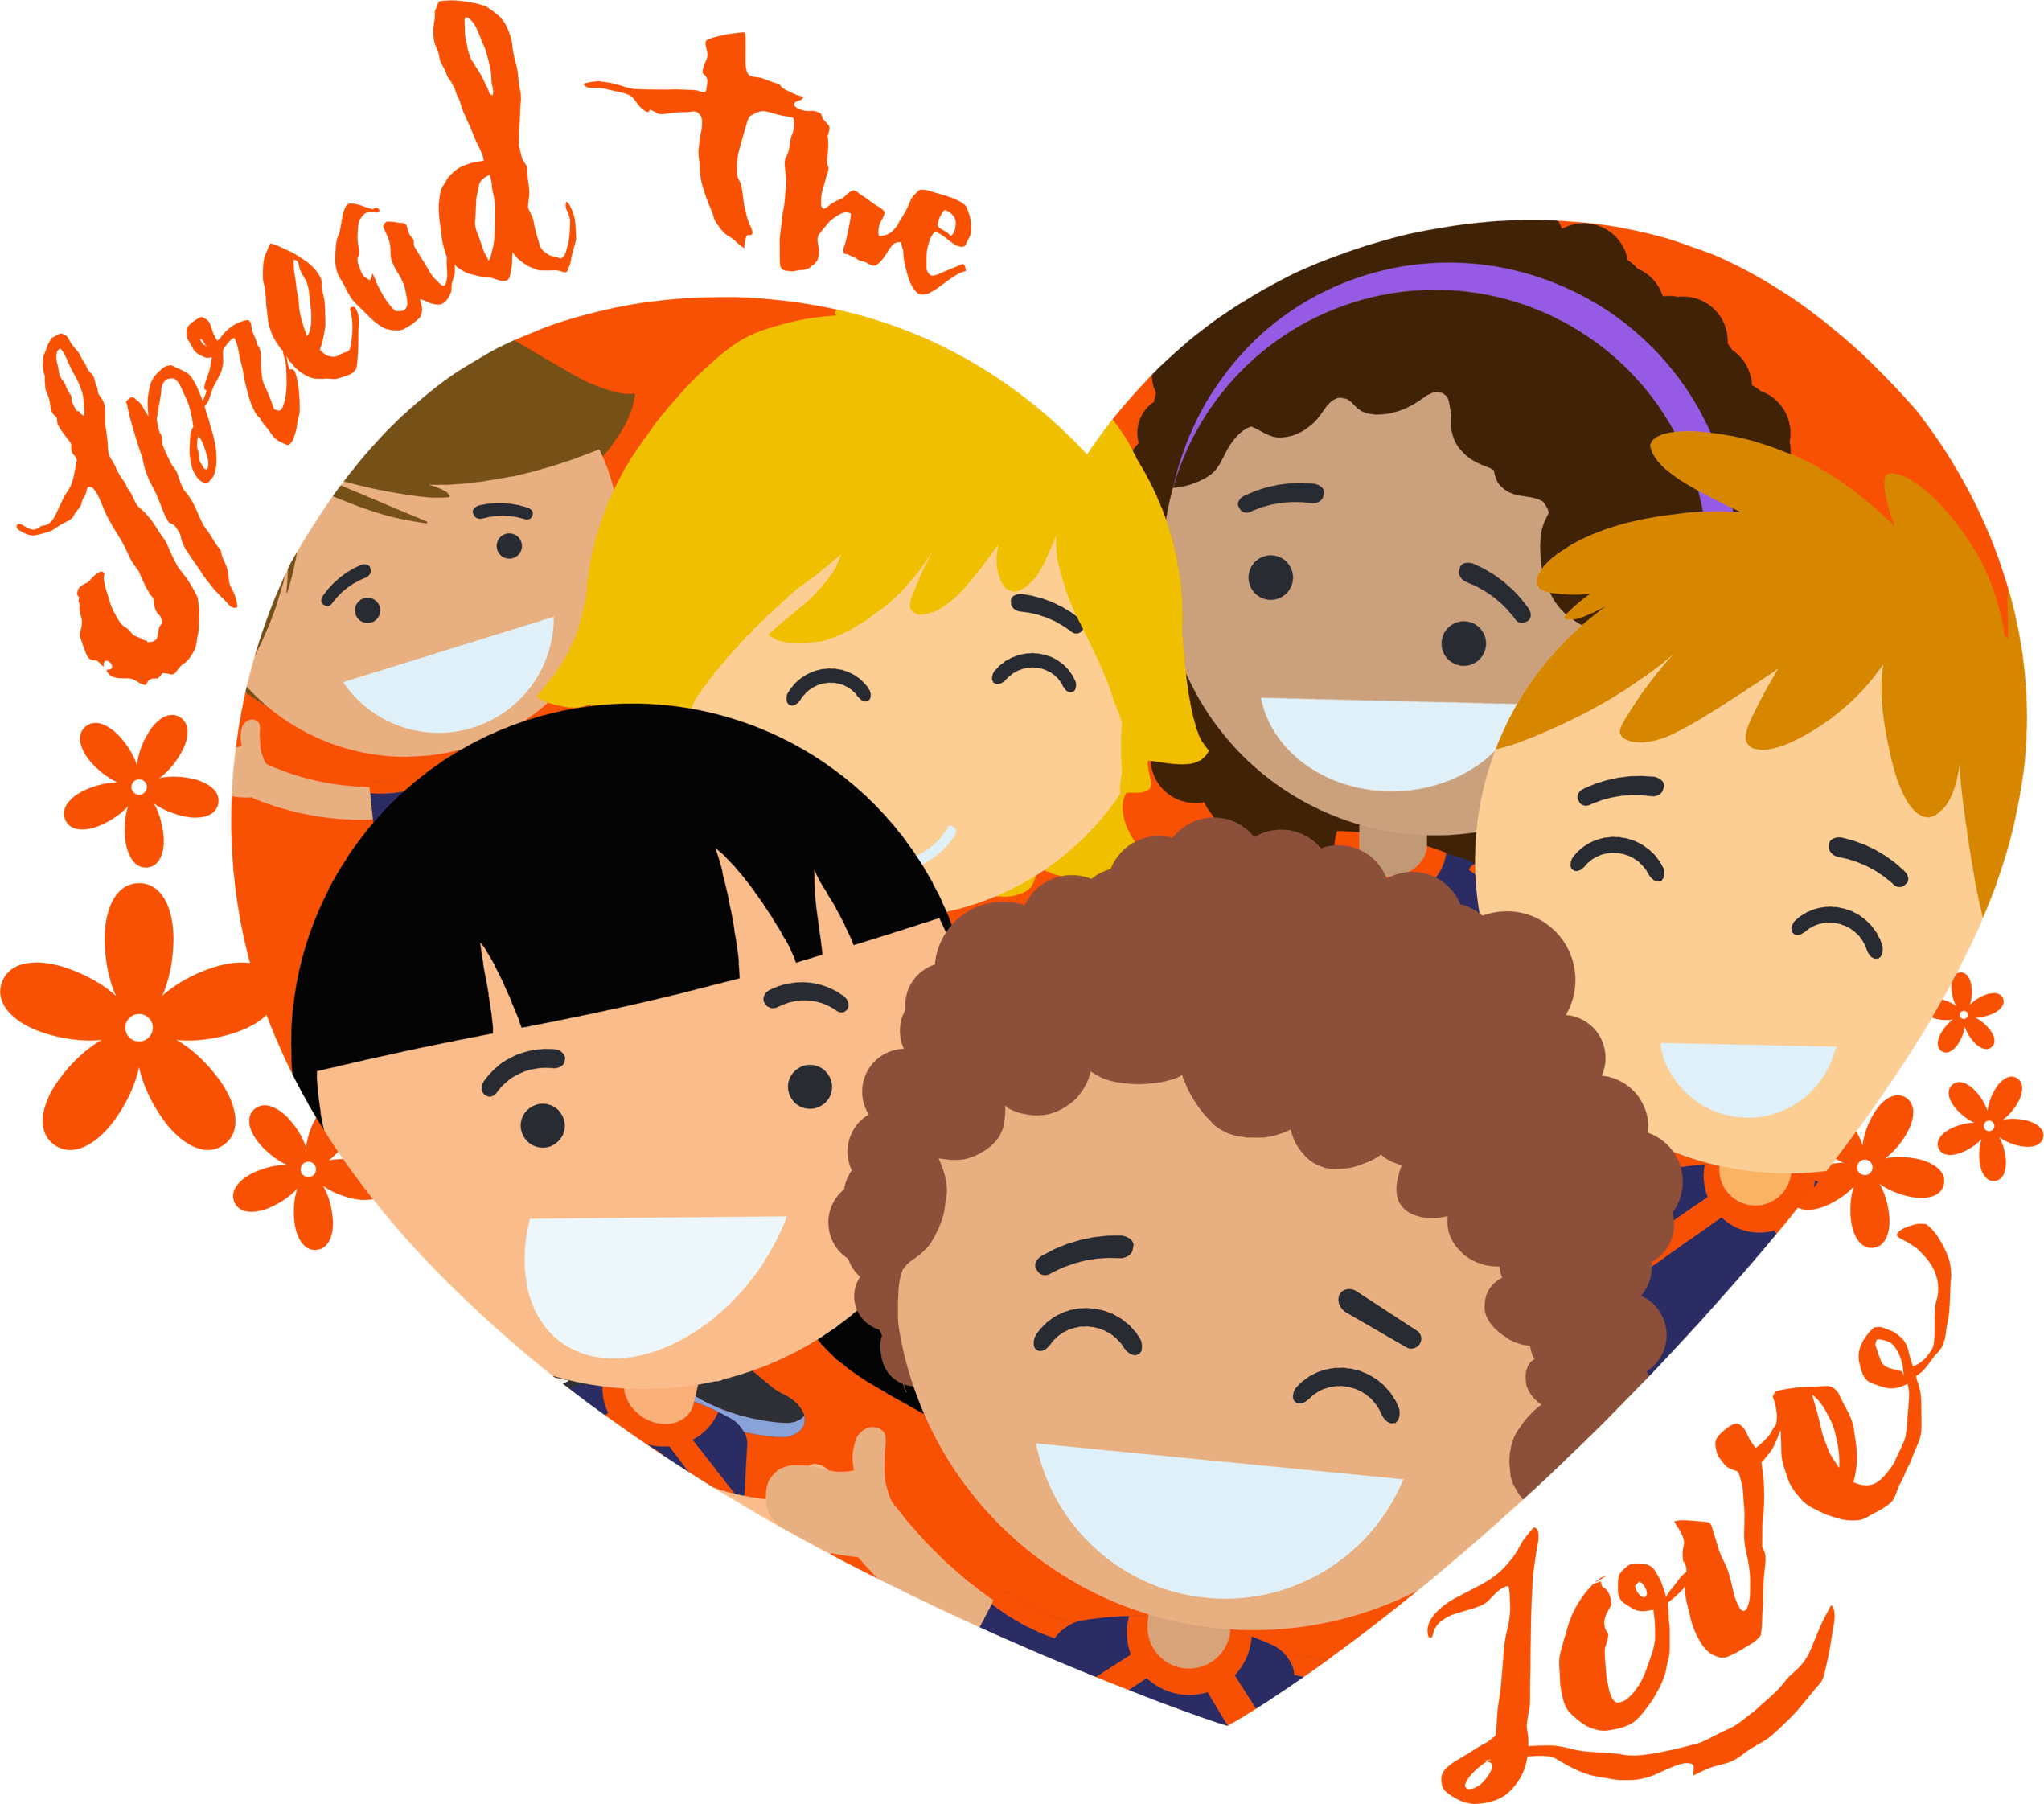 Clo week landing page. Human clipart kindness